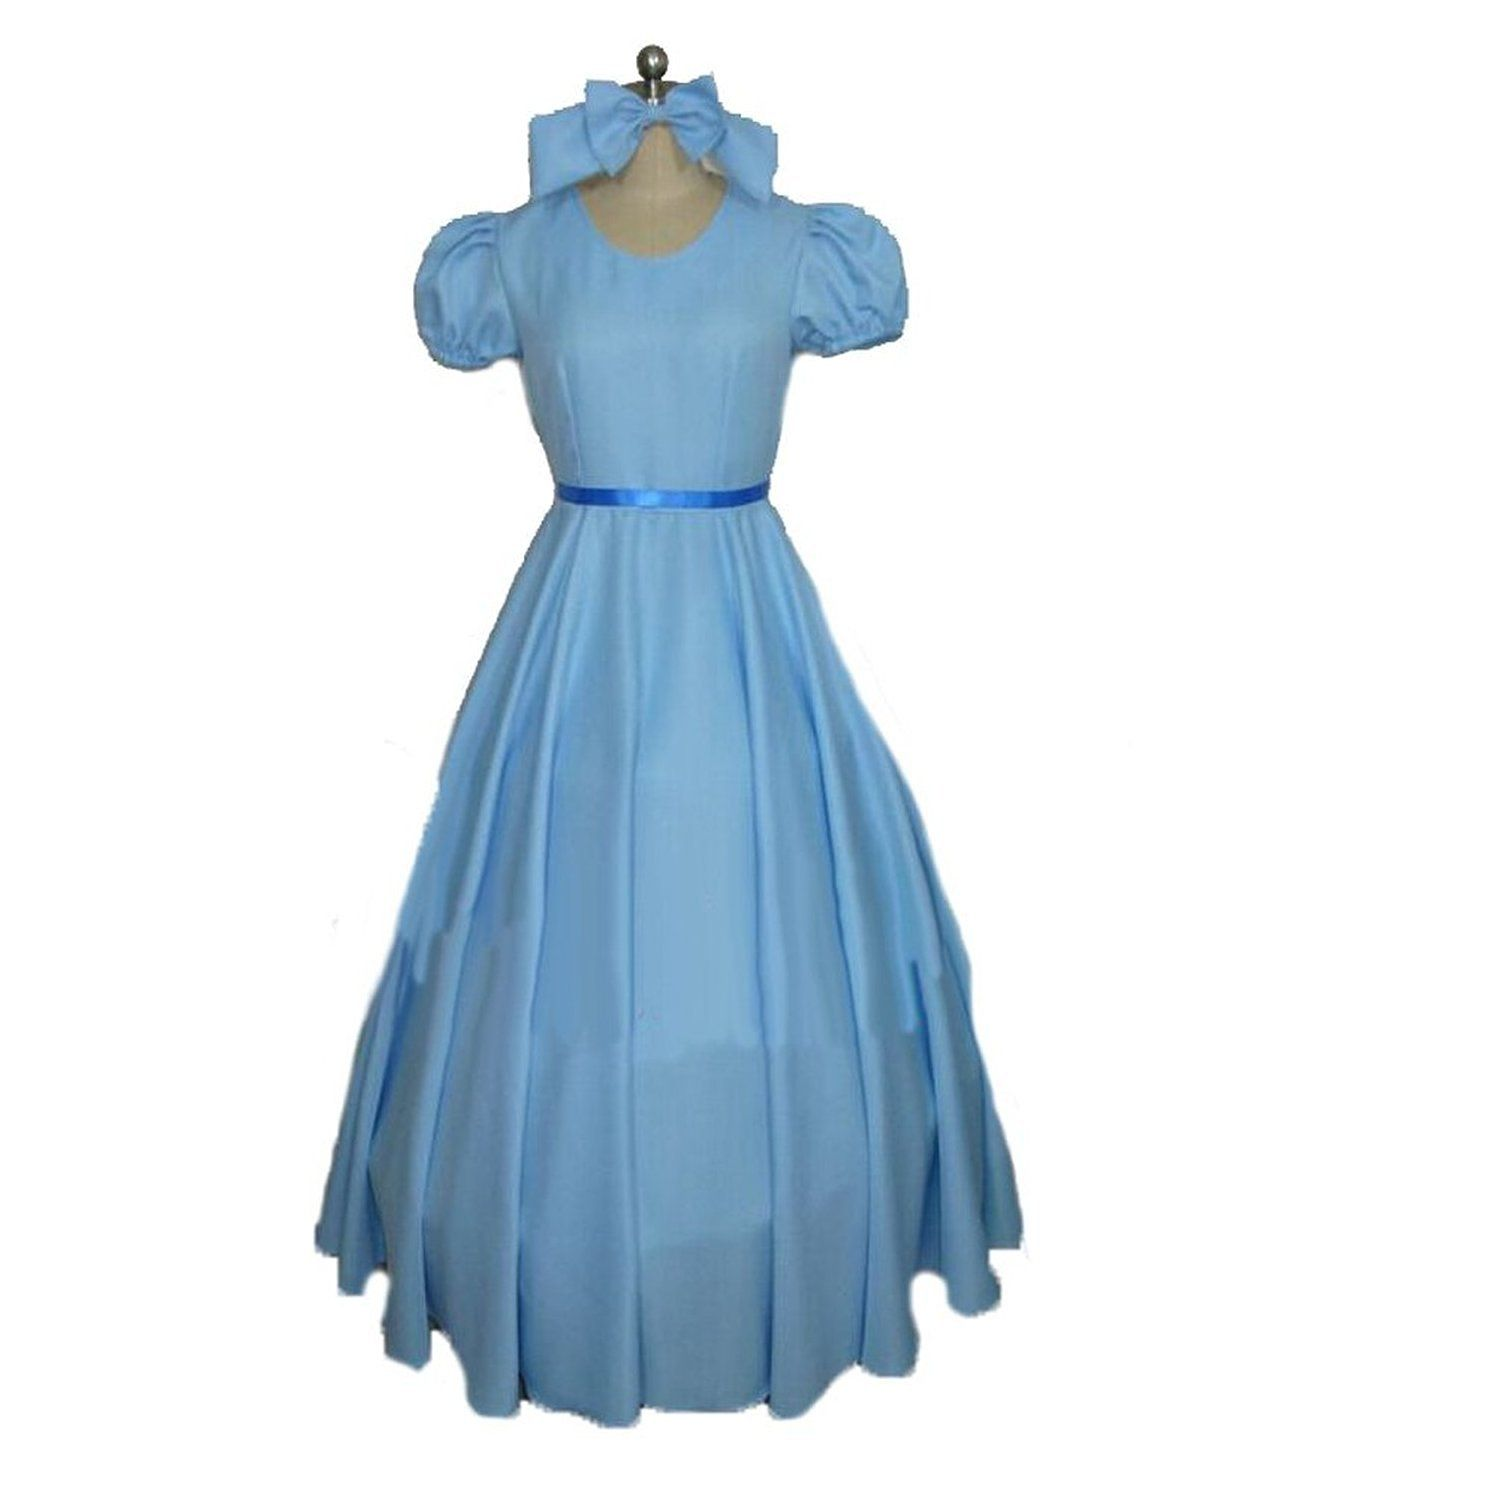 Perfect Costume Party Dress Motif - All Wedding Dresses ...